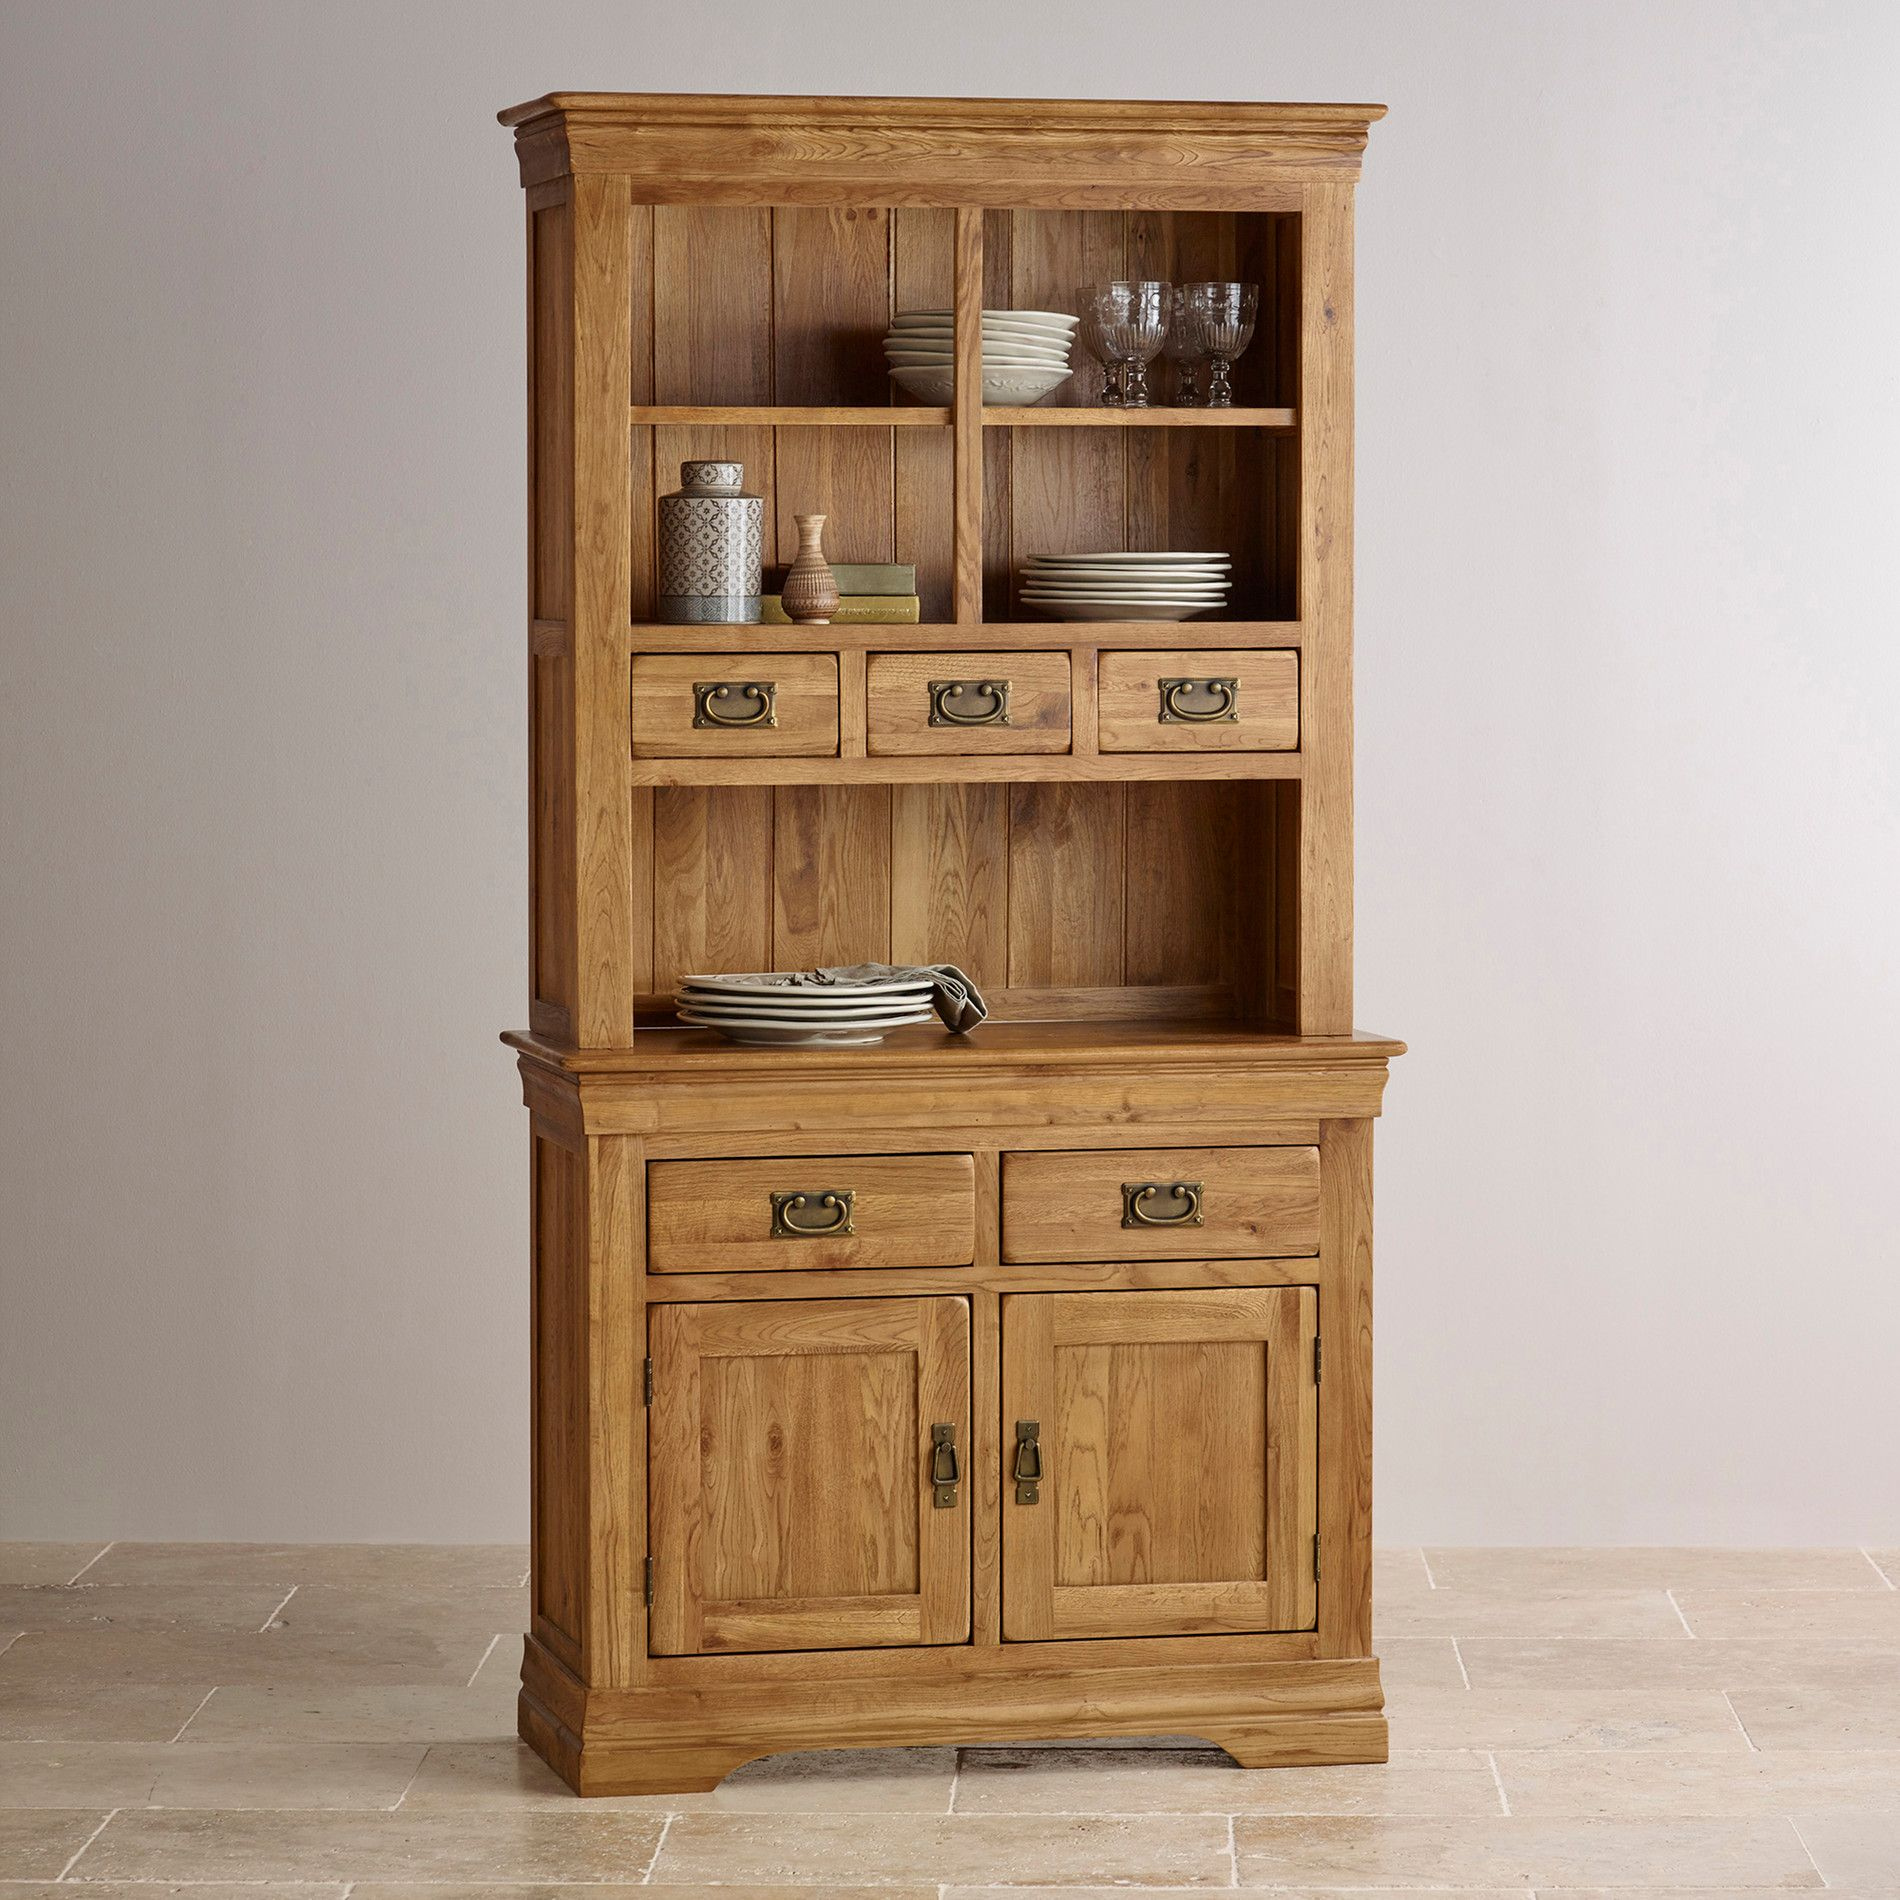 French Farmhouse Rustic Solid Oak Dresser